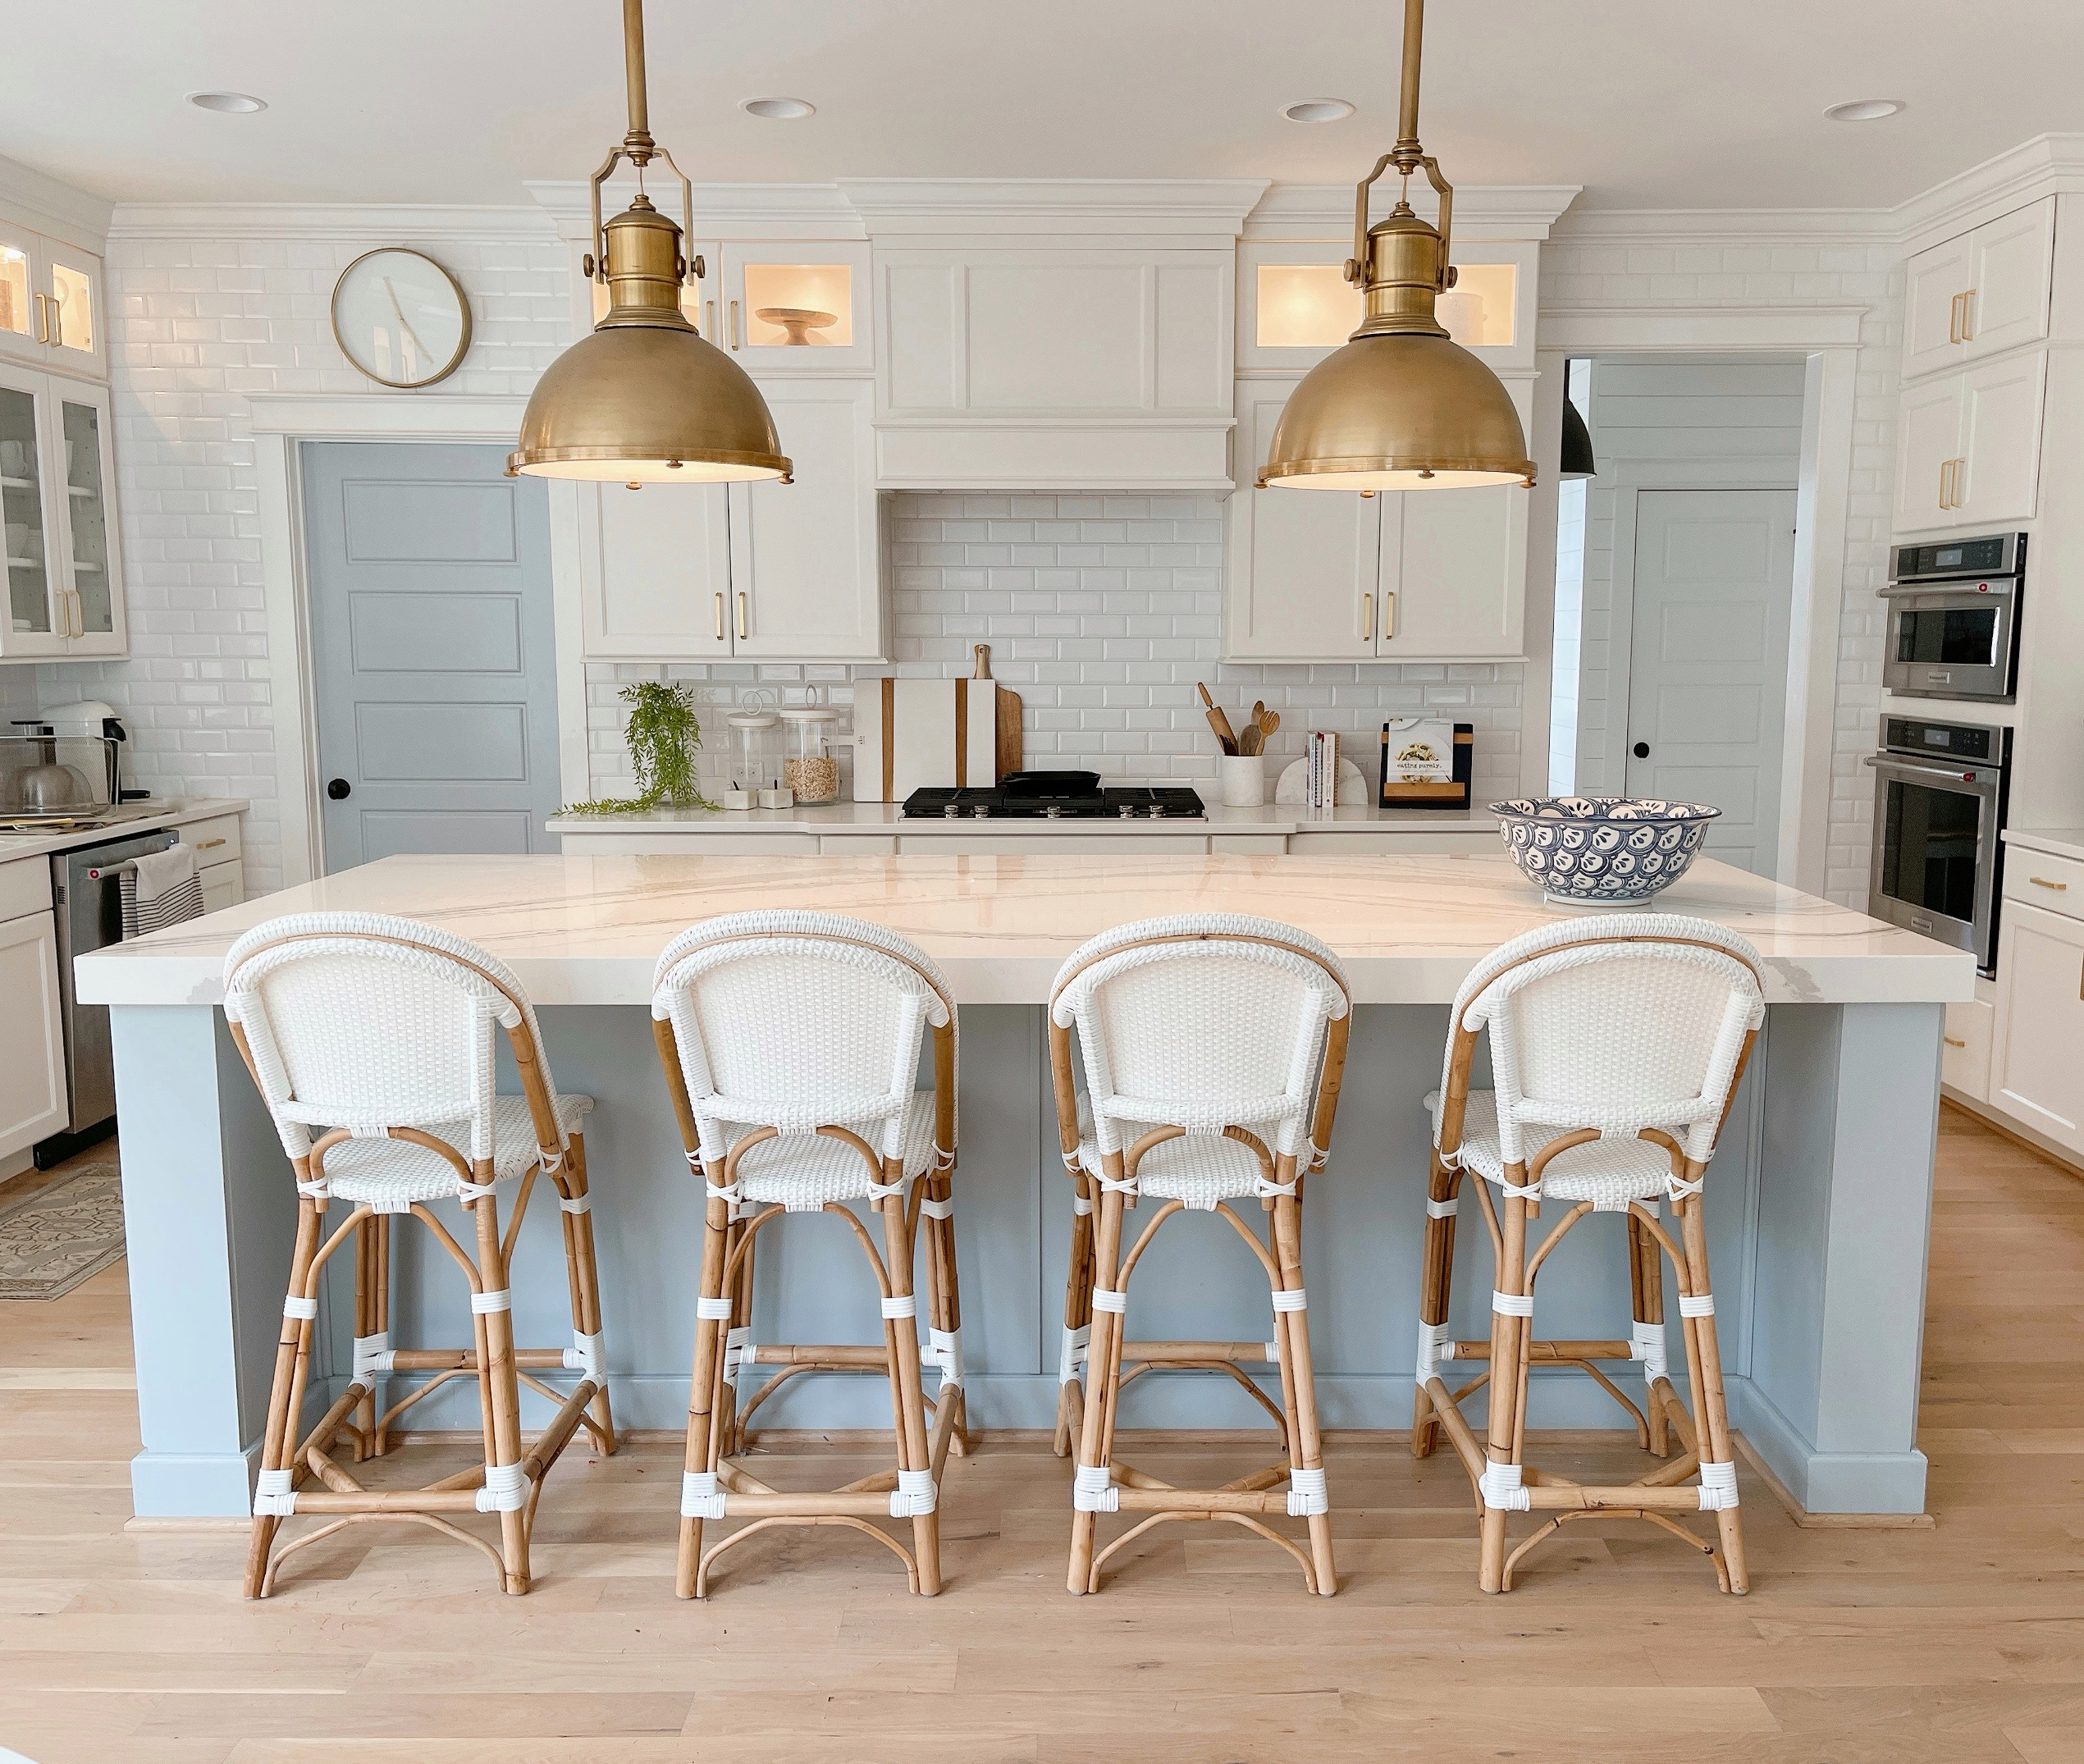 15 Blue Kitchen Islands Their Paint Colors Chrissy Marie Blog